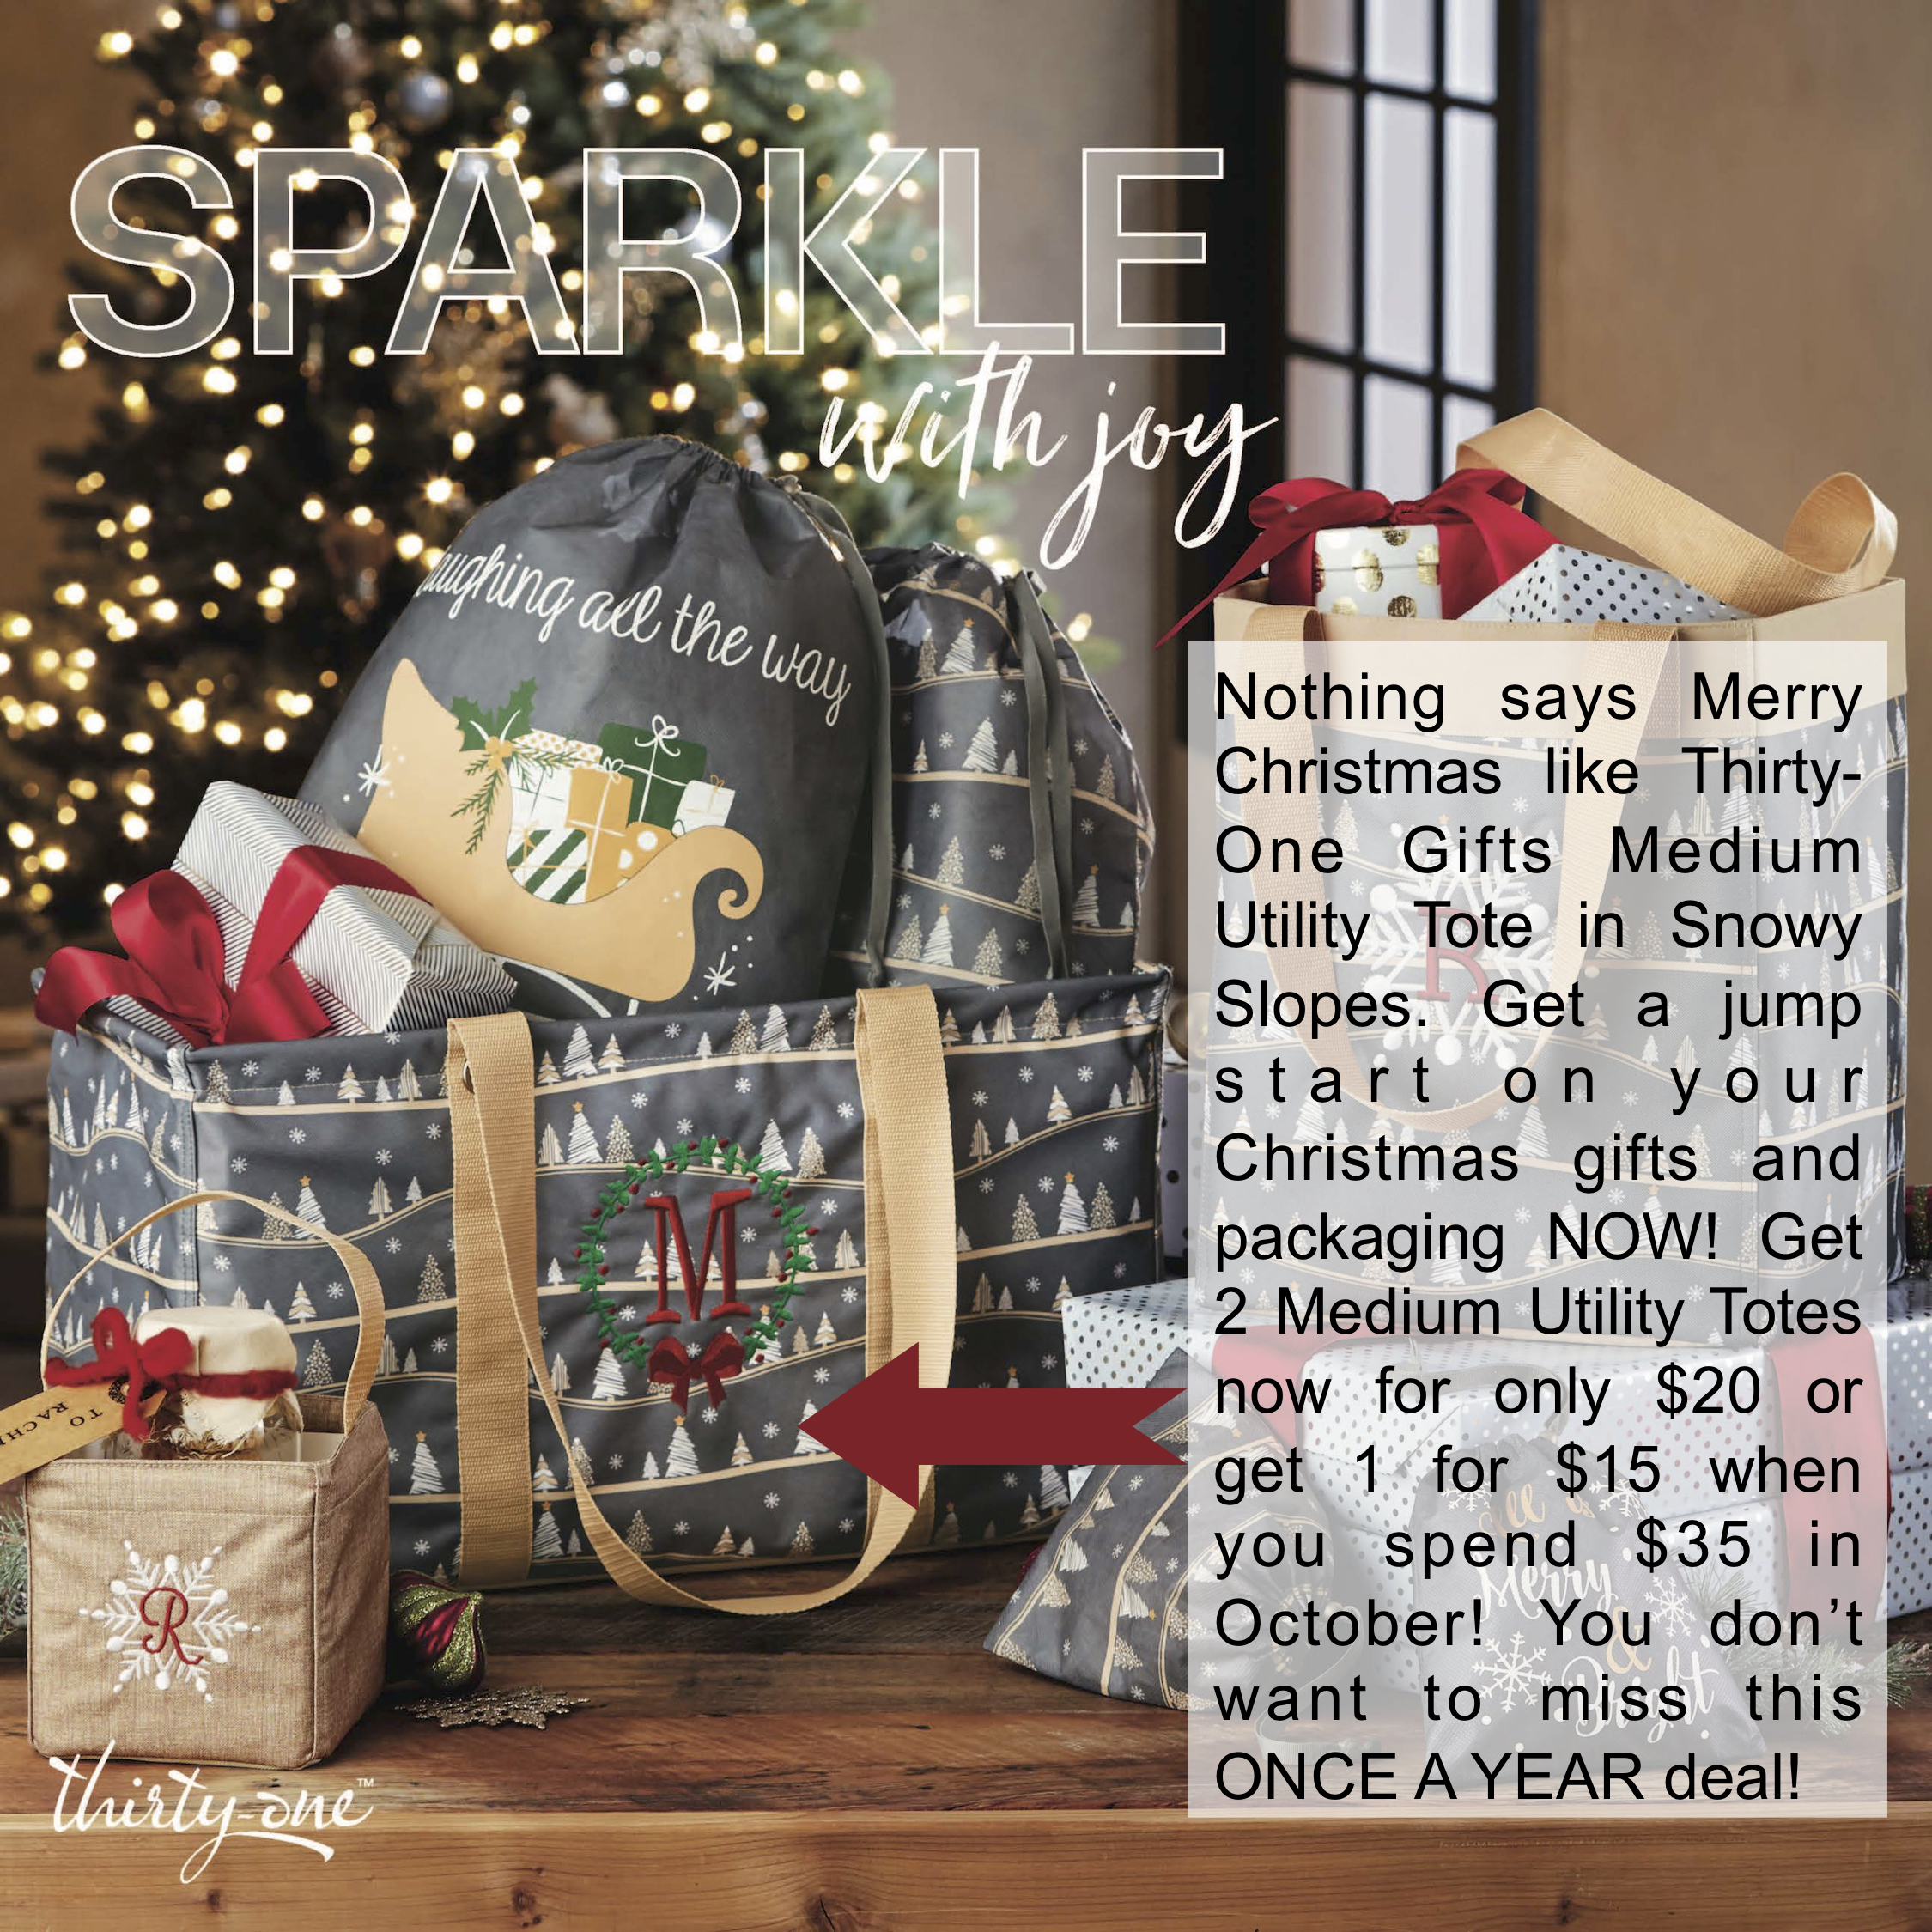 Thirty-One Gifts – Snowy Slopes